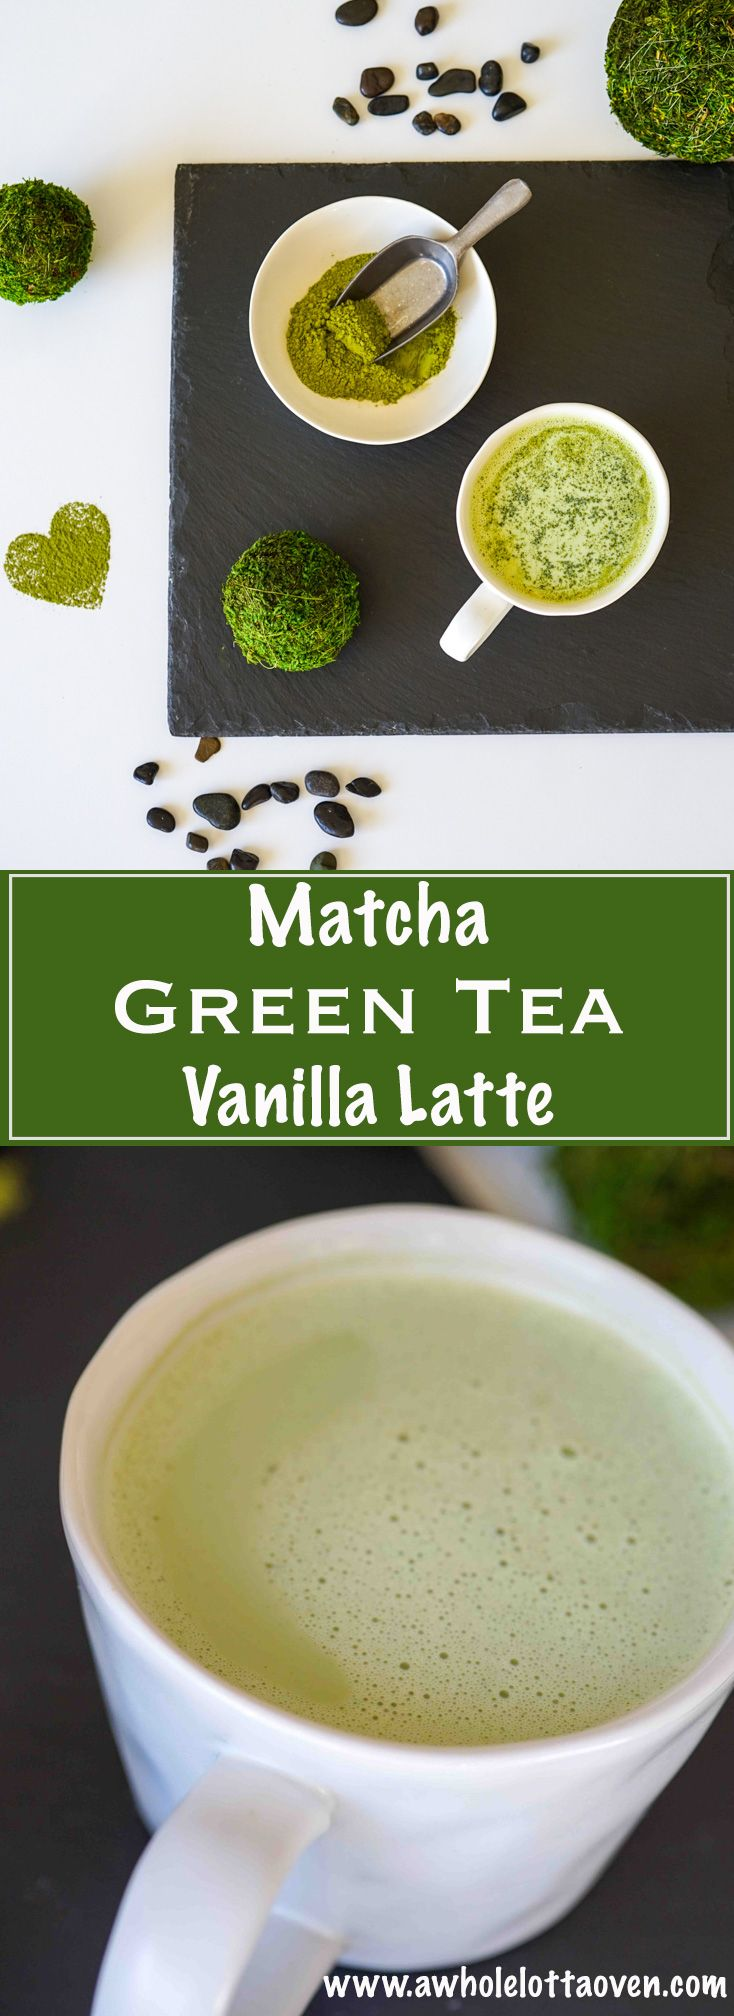 Matcha Green Tea Vanilla Latte - A Whole Lotta Oven